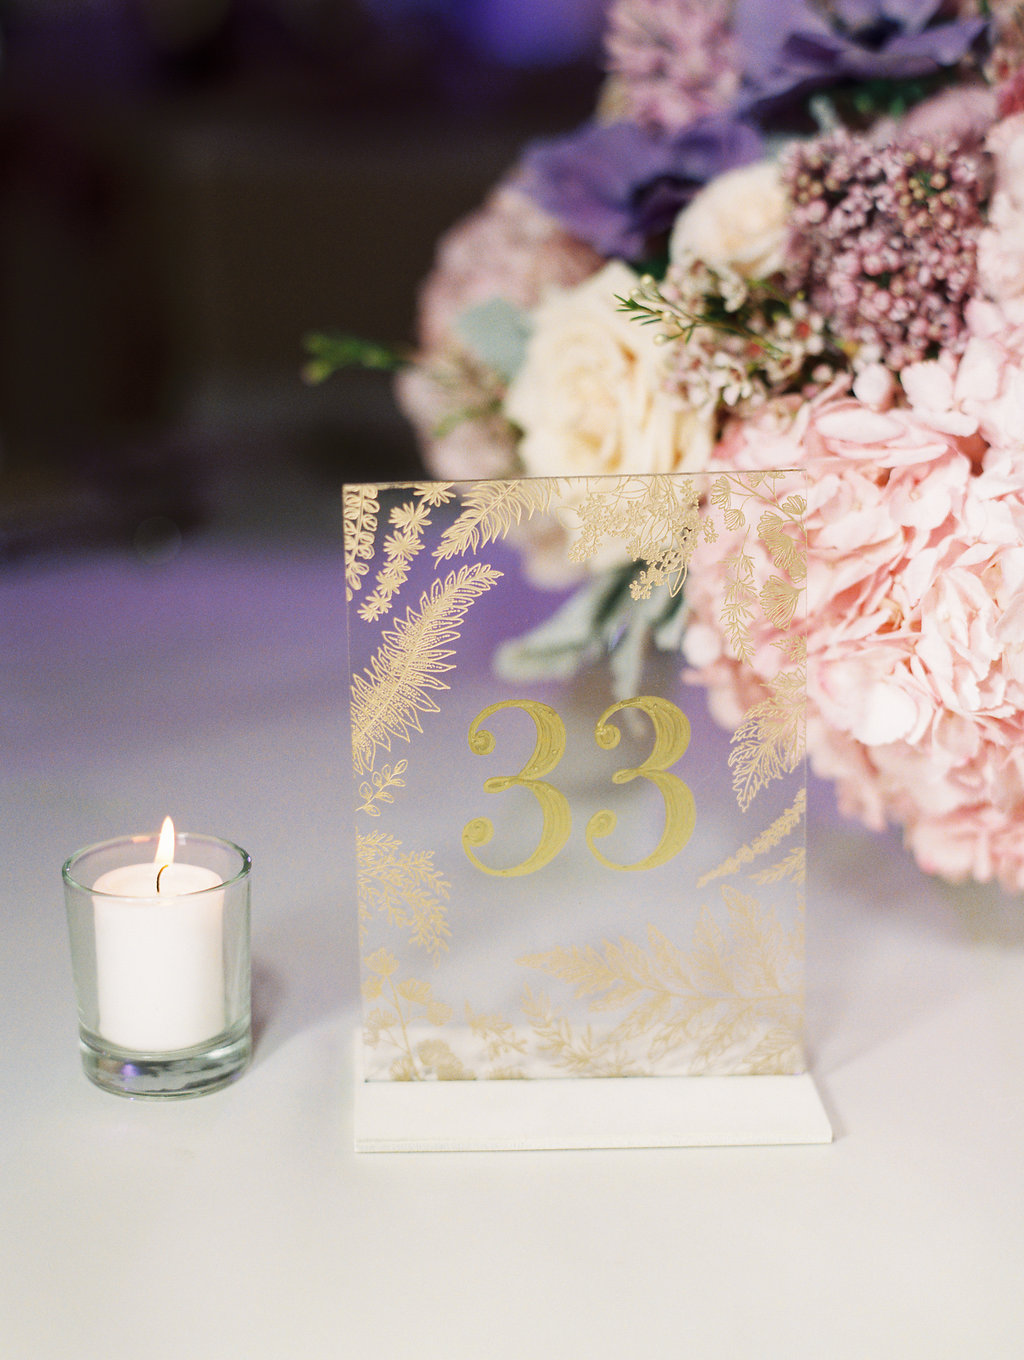 wedding-reception-table-bouquet-centerpieces-calligraphy-candles-2.jpg